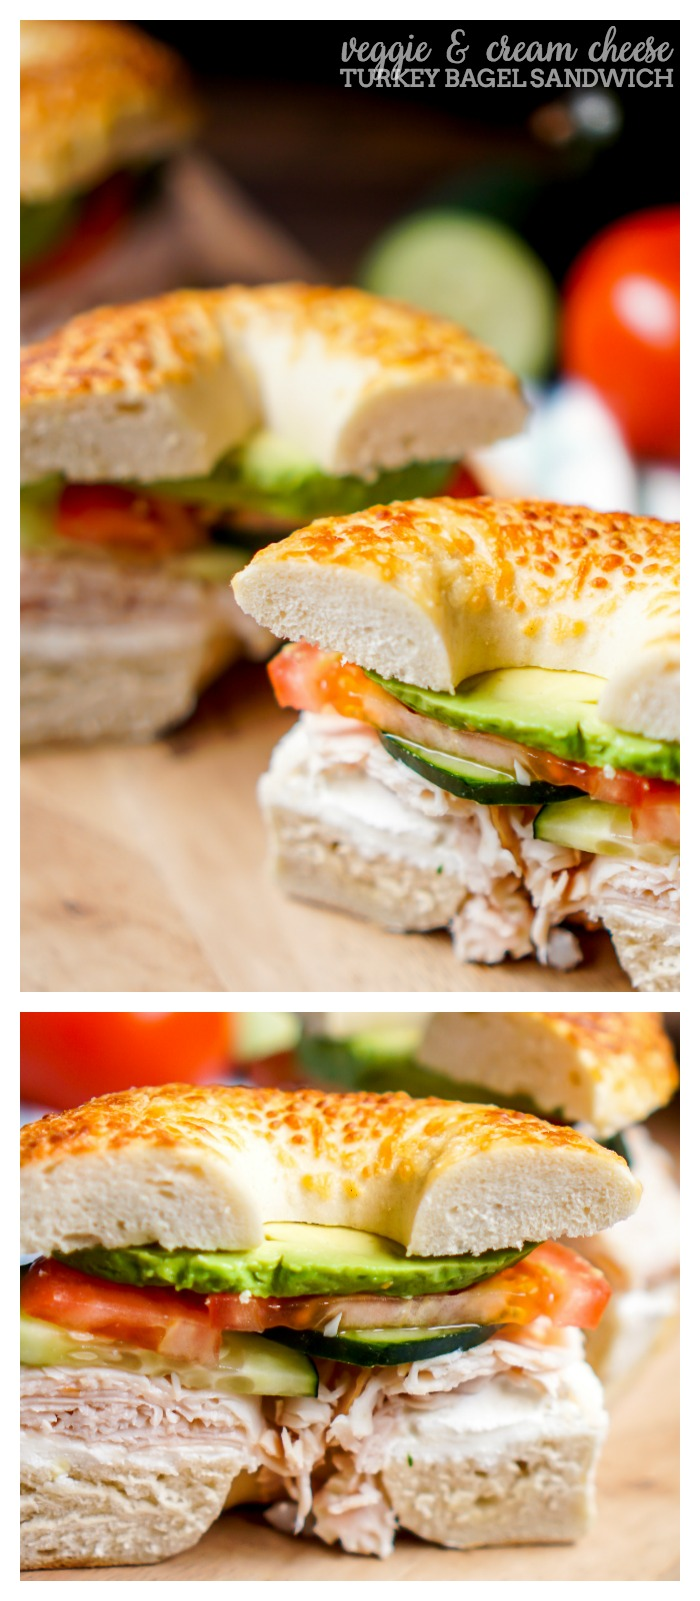 Veggie and Cream Cheese Turkey Bagel Sandwich - Spruce up lunch with a ...